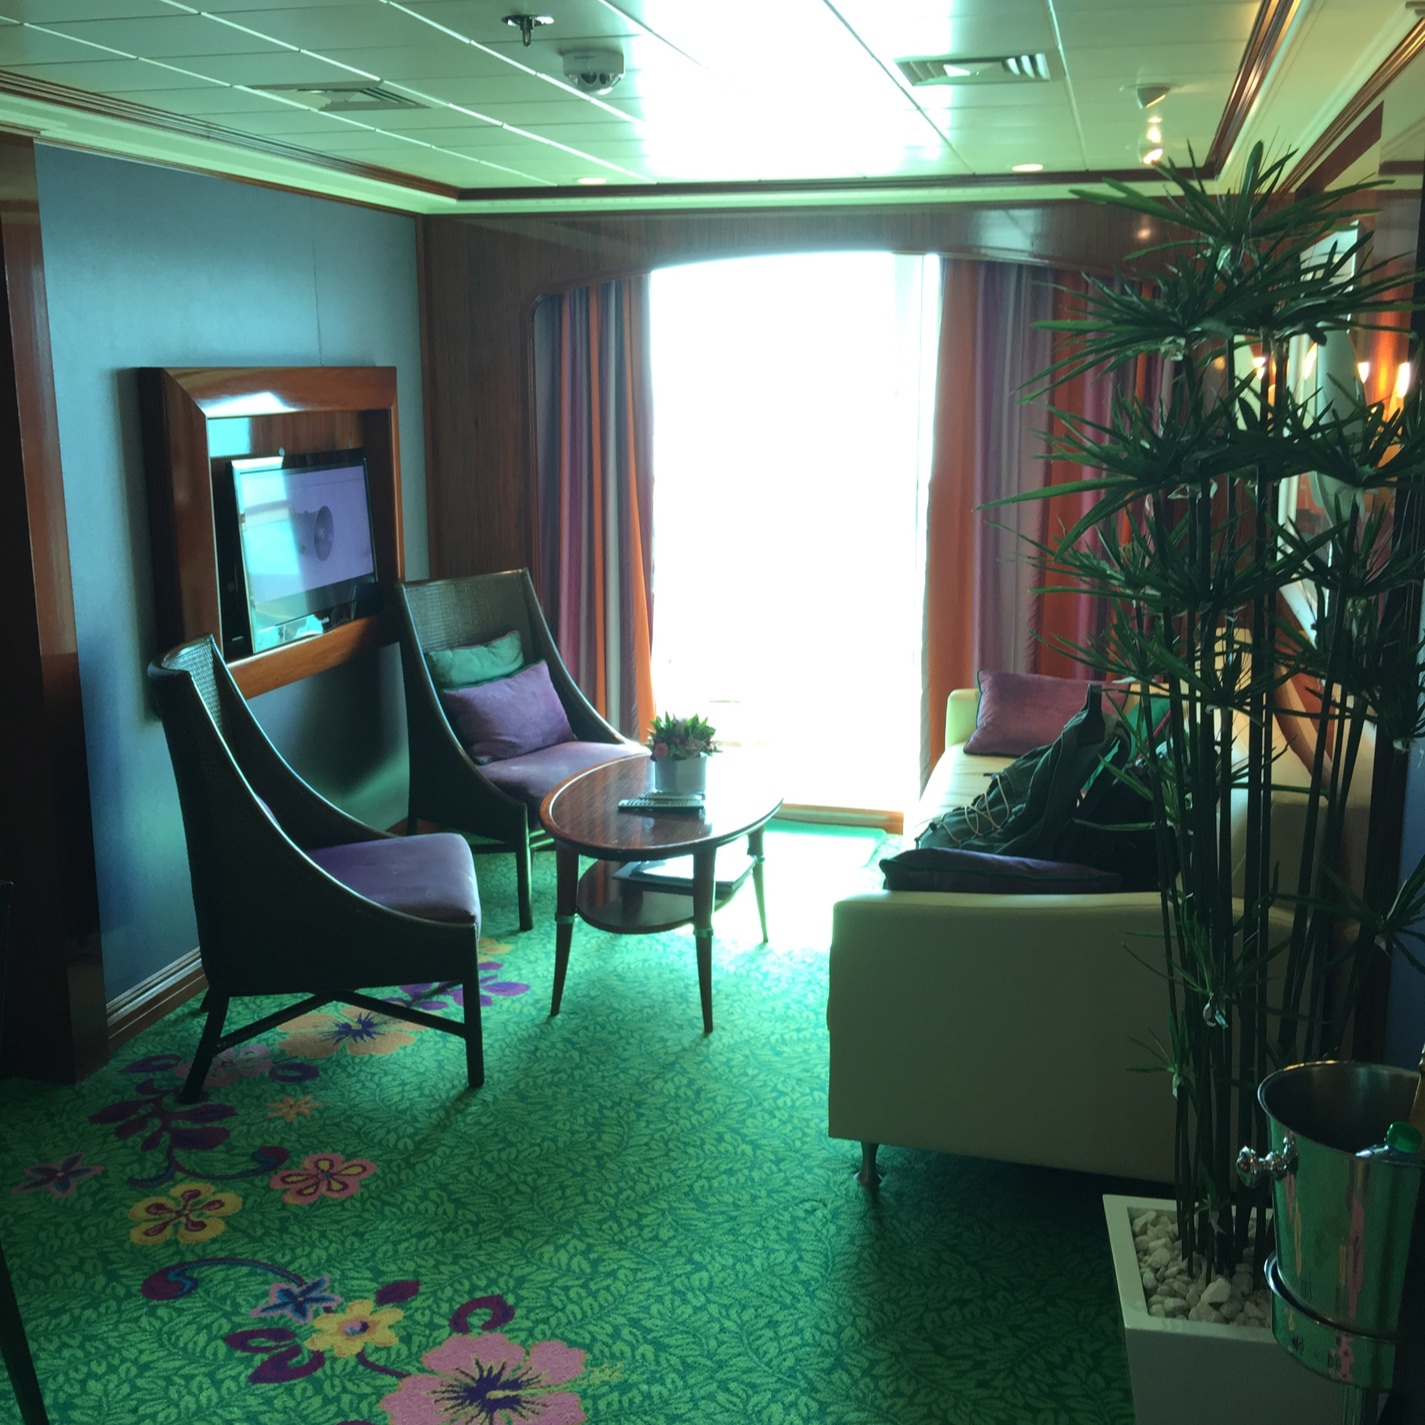 Norwegian Jade Professional Photo